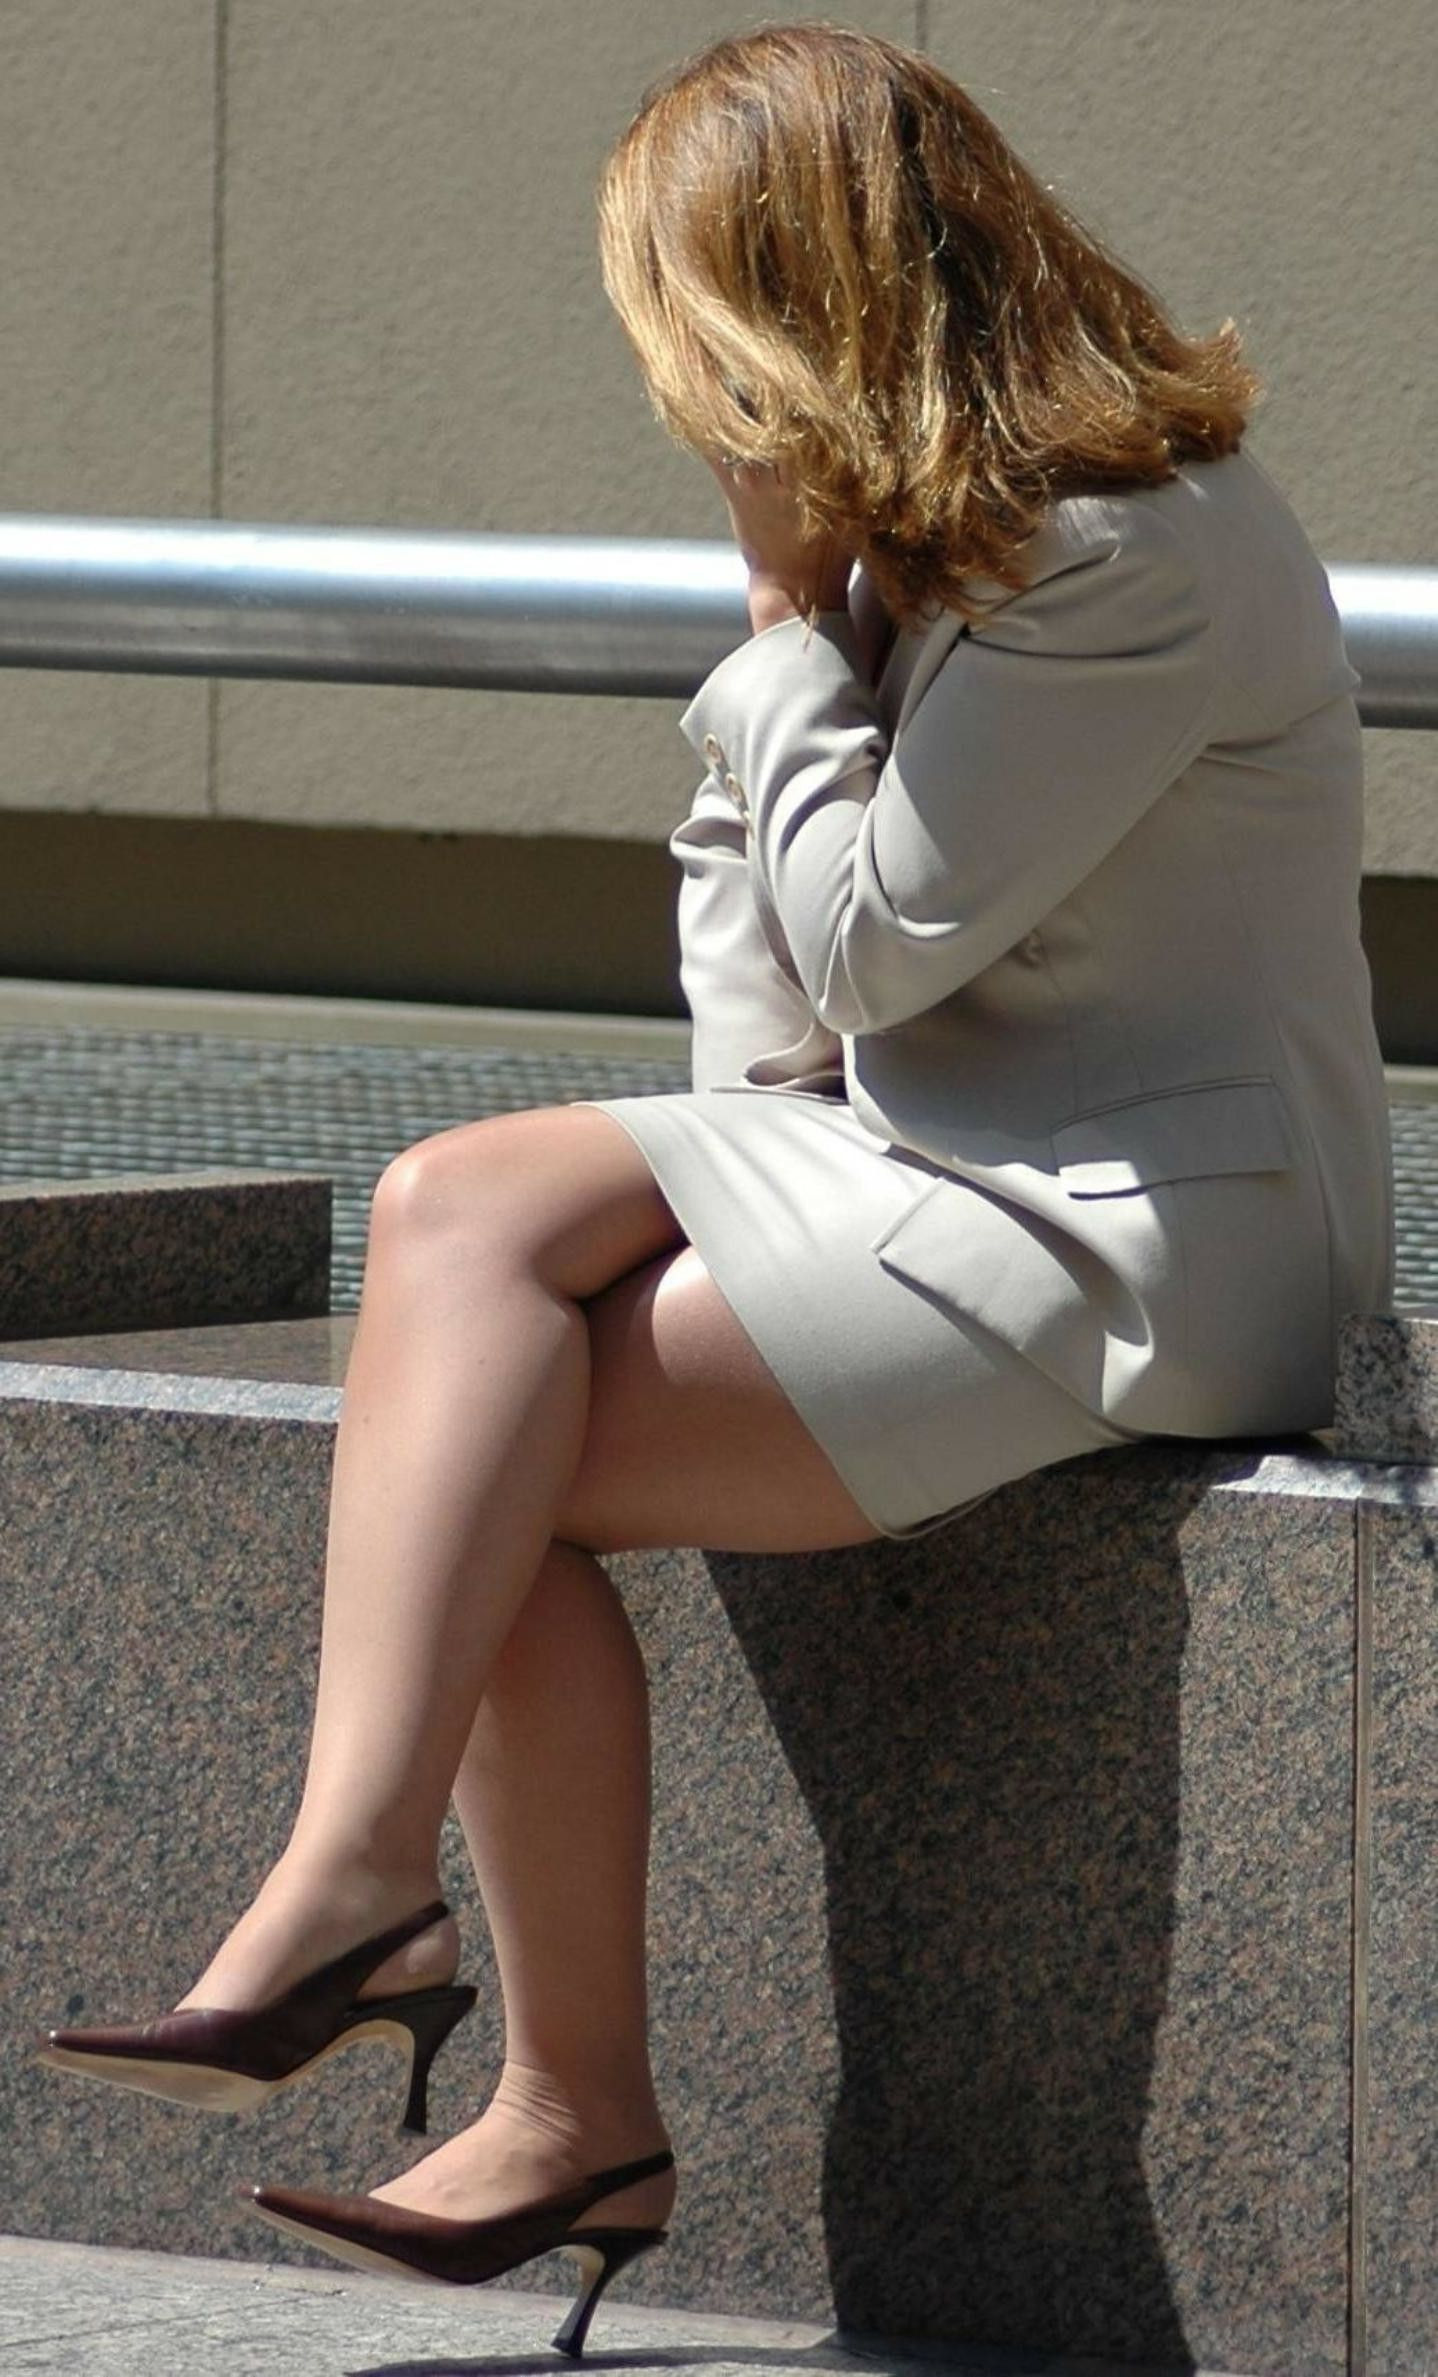 candid mature office girl wearing pantyhose and heels with her legs